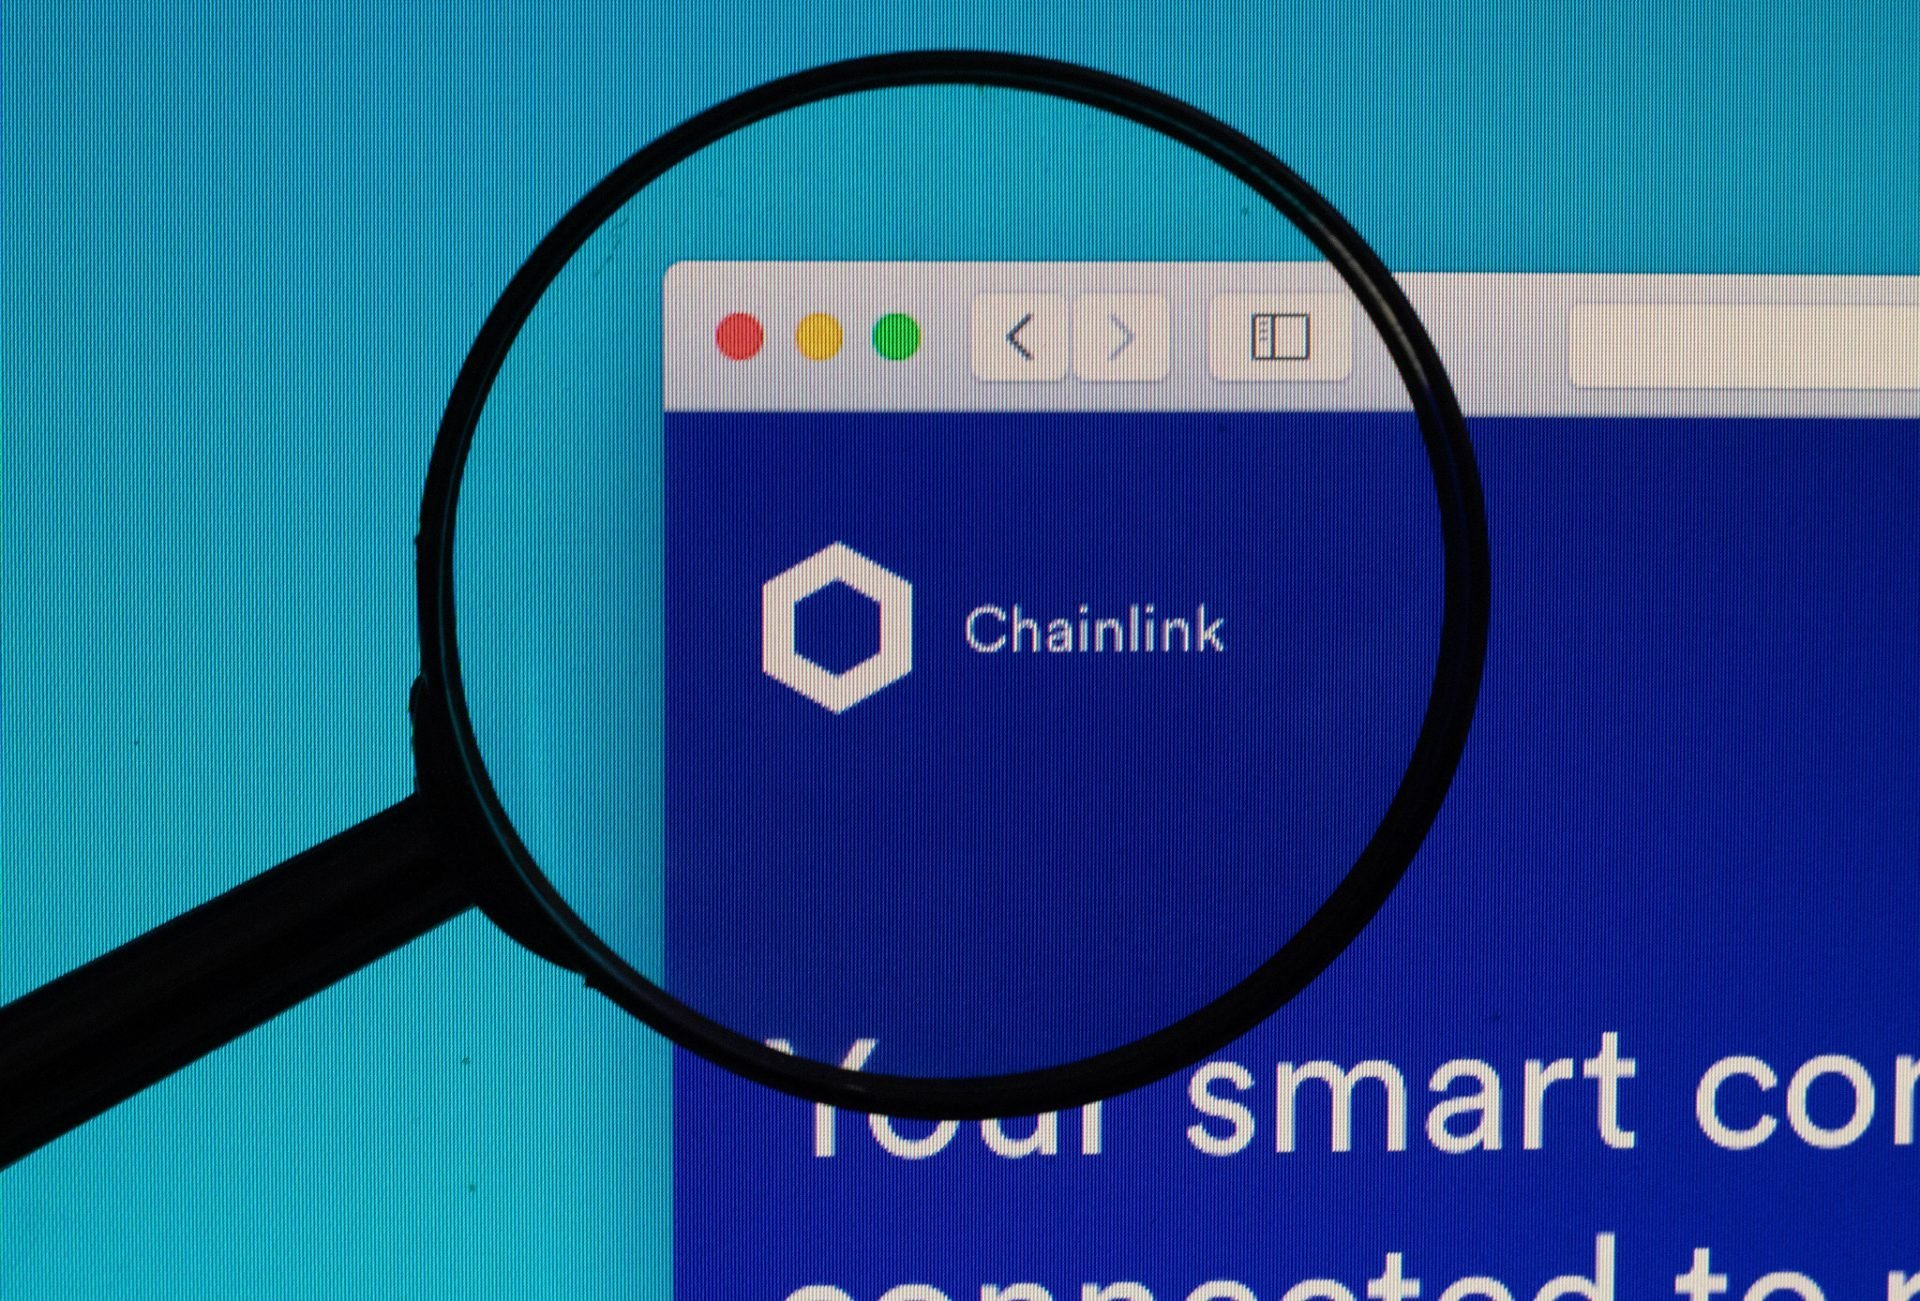 New York Coinbase Users Can Now Trade Chainlink (LINK) 12